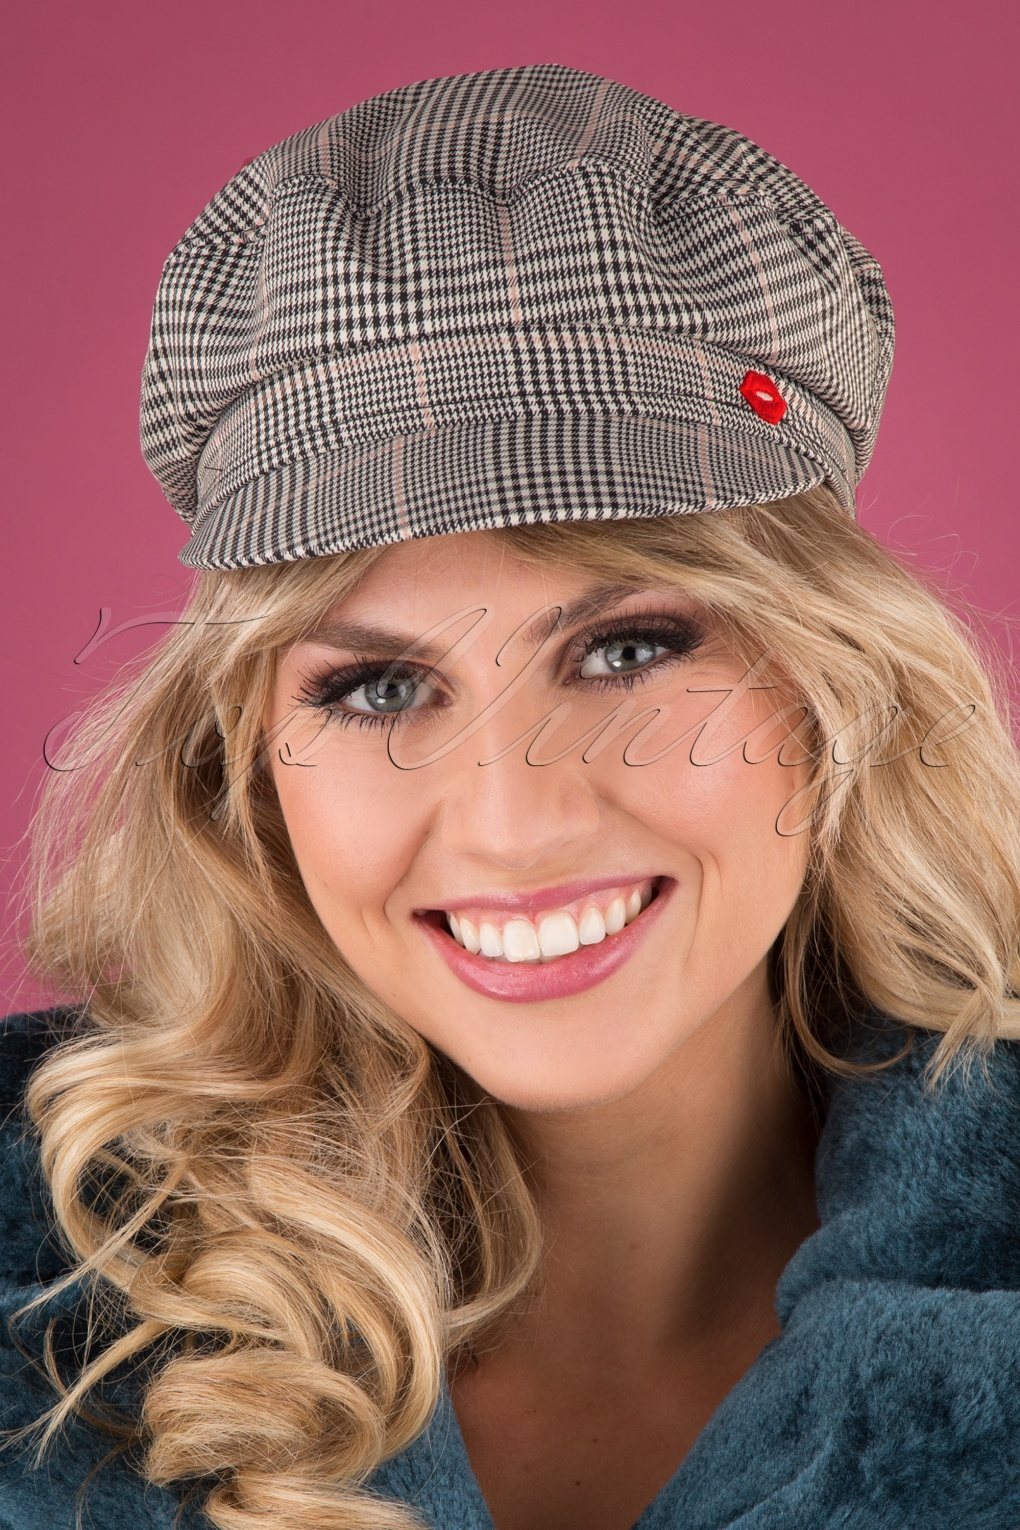 Women's Vintage Hats | Old Fashioned Hats | Retro Hats 70s Think A Hat Cap in Glencheck Grey £10.16 AT vintagedancer.com